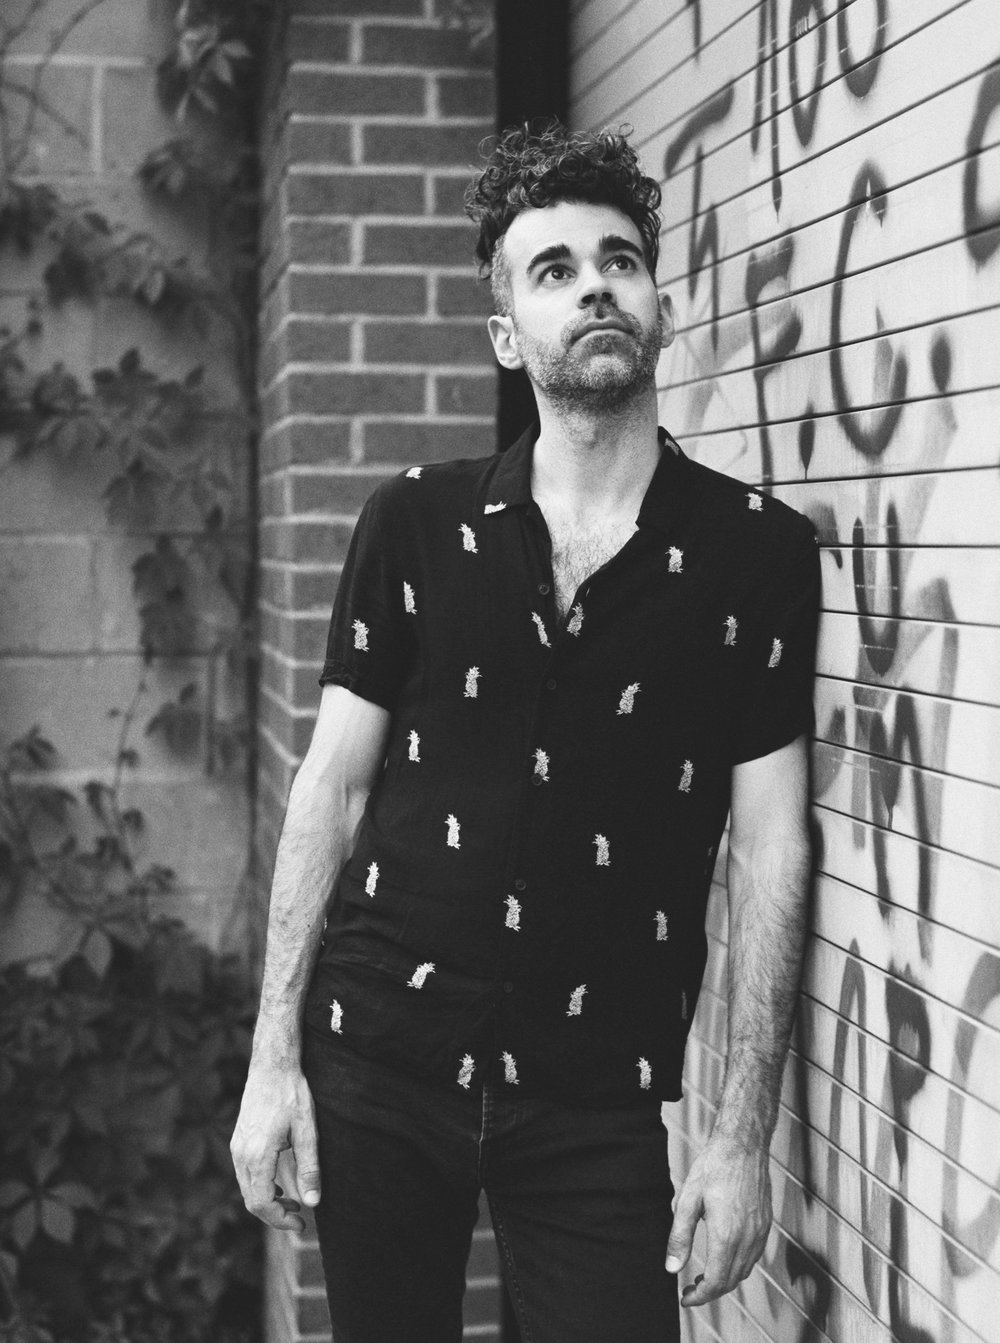 Geographer: Music Inspired by Life and Loneliness